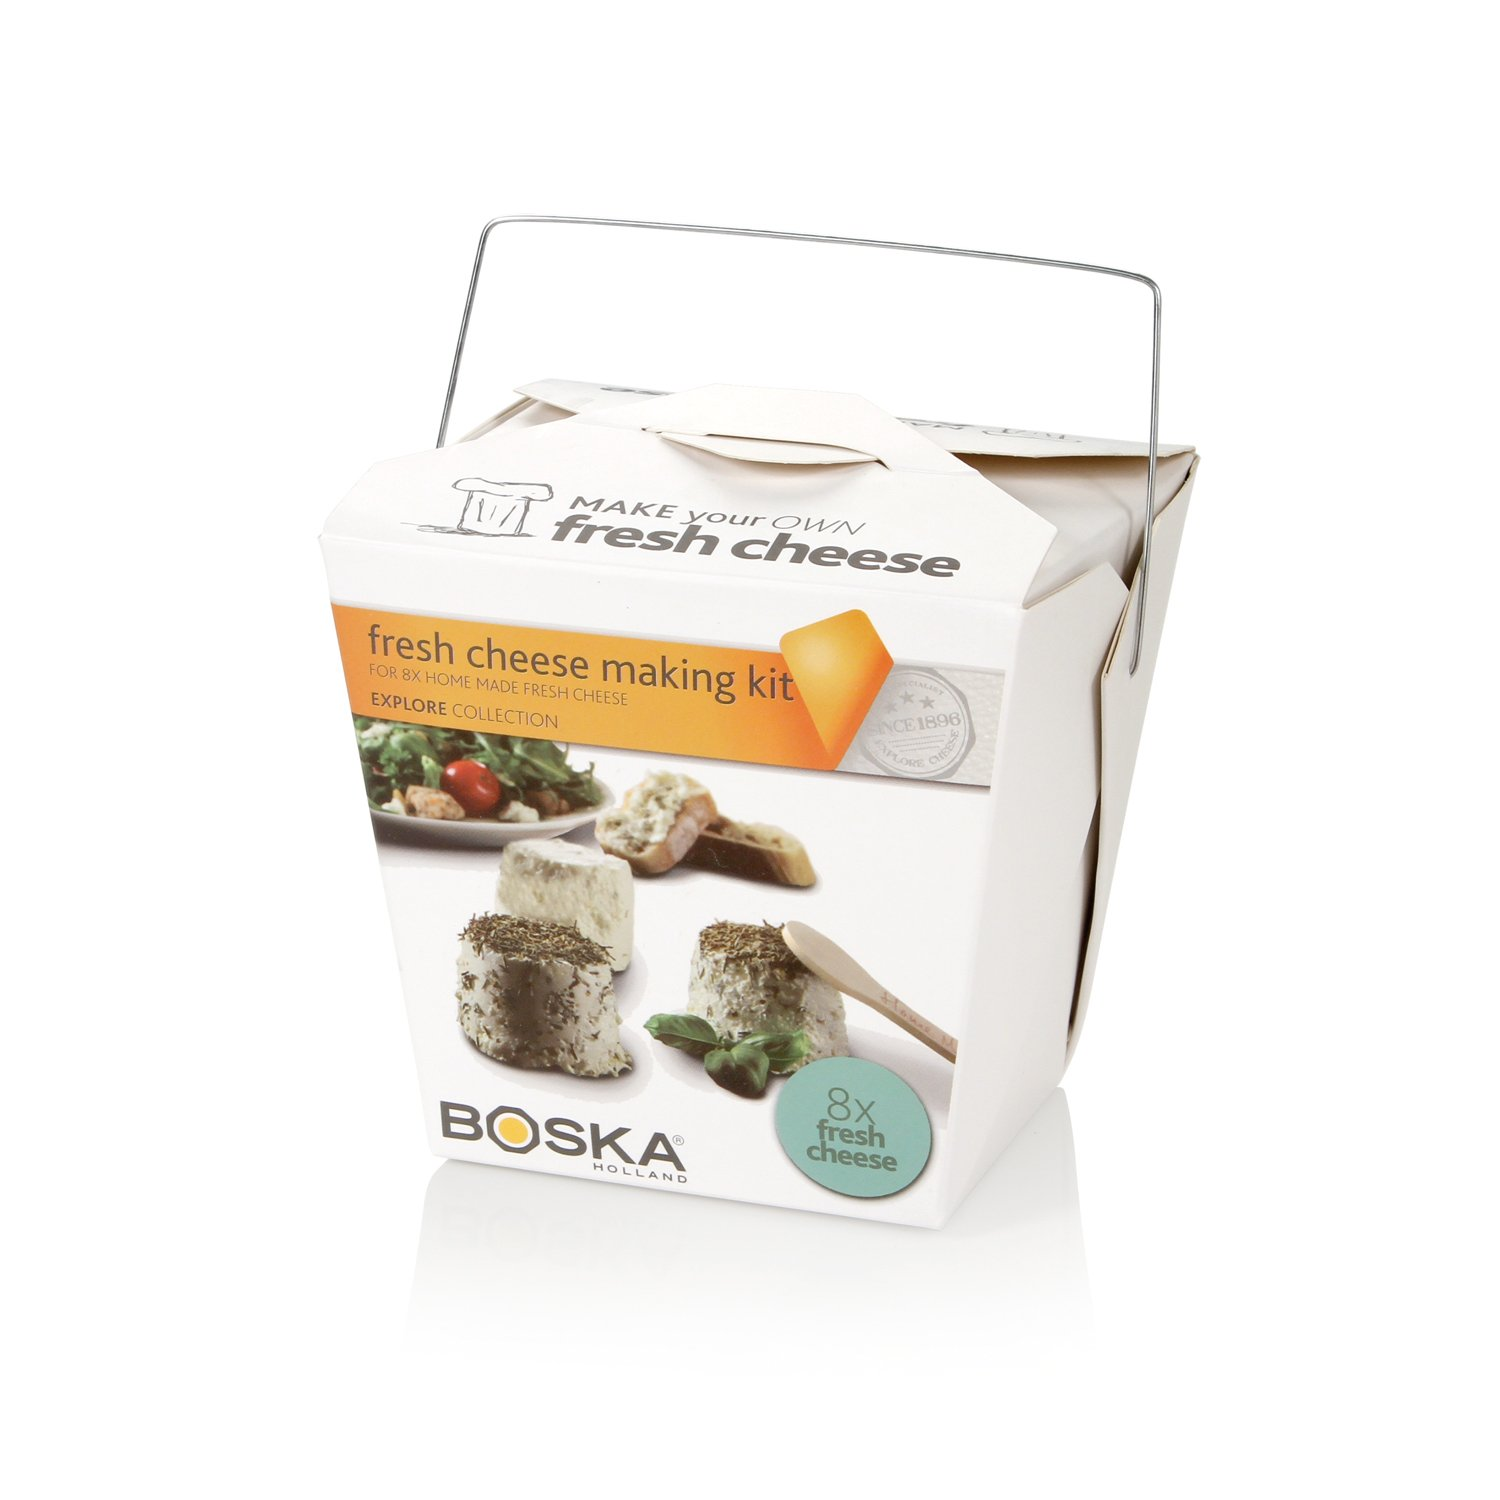 Boska Holland Fresh Cheese Making Kit, Homemade Set, Makes up to 8 Batches, Explore Collection